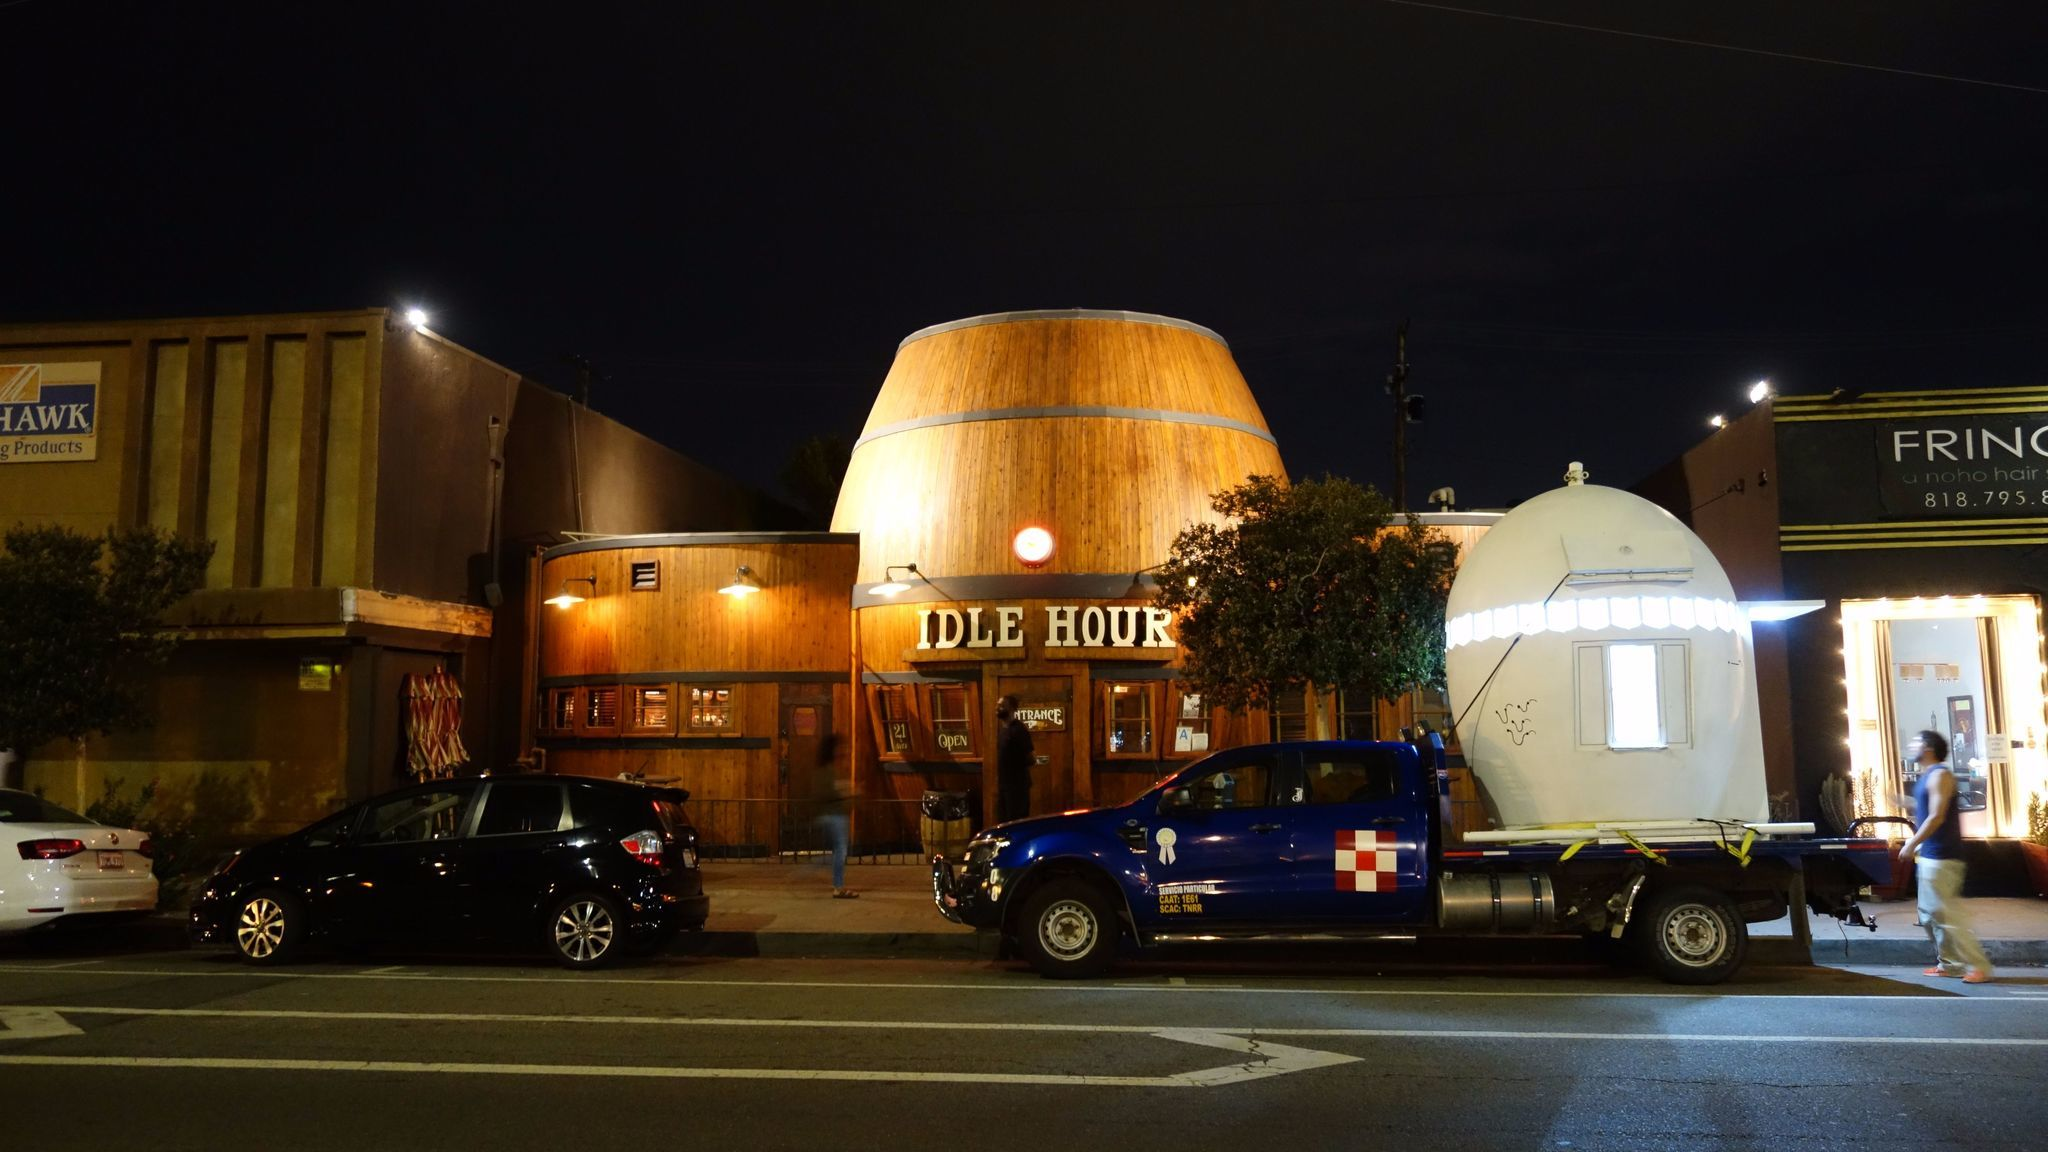 The NuMu parked outside the Idle Hour bar in North Hollywood, which is shaped like a barrel.